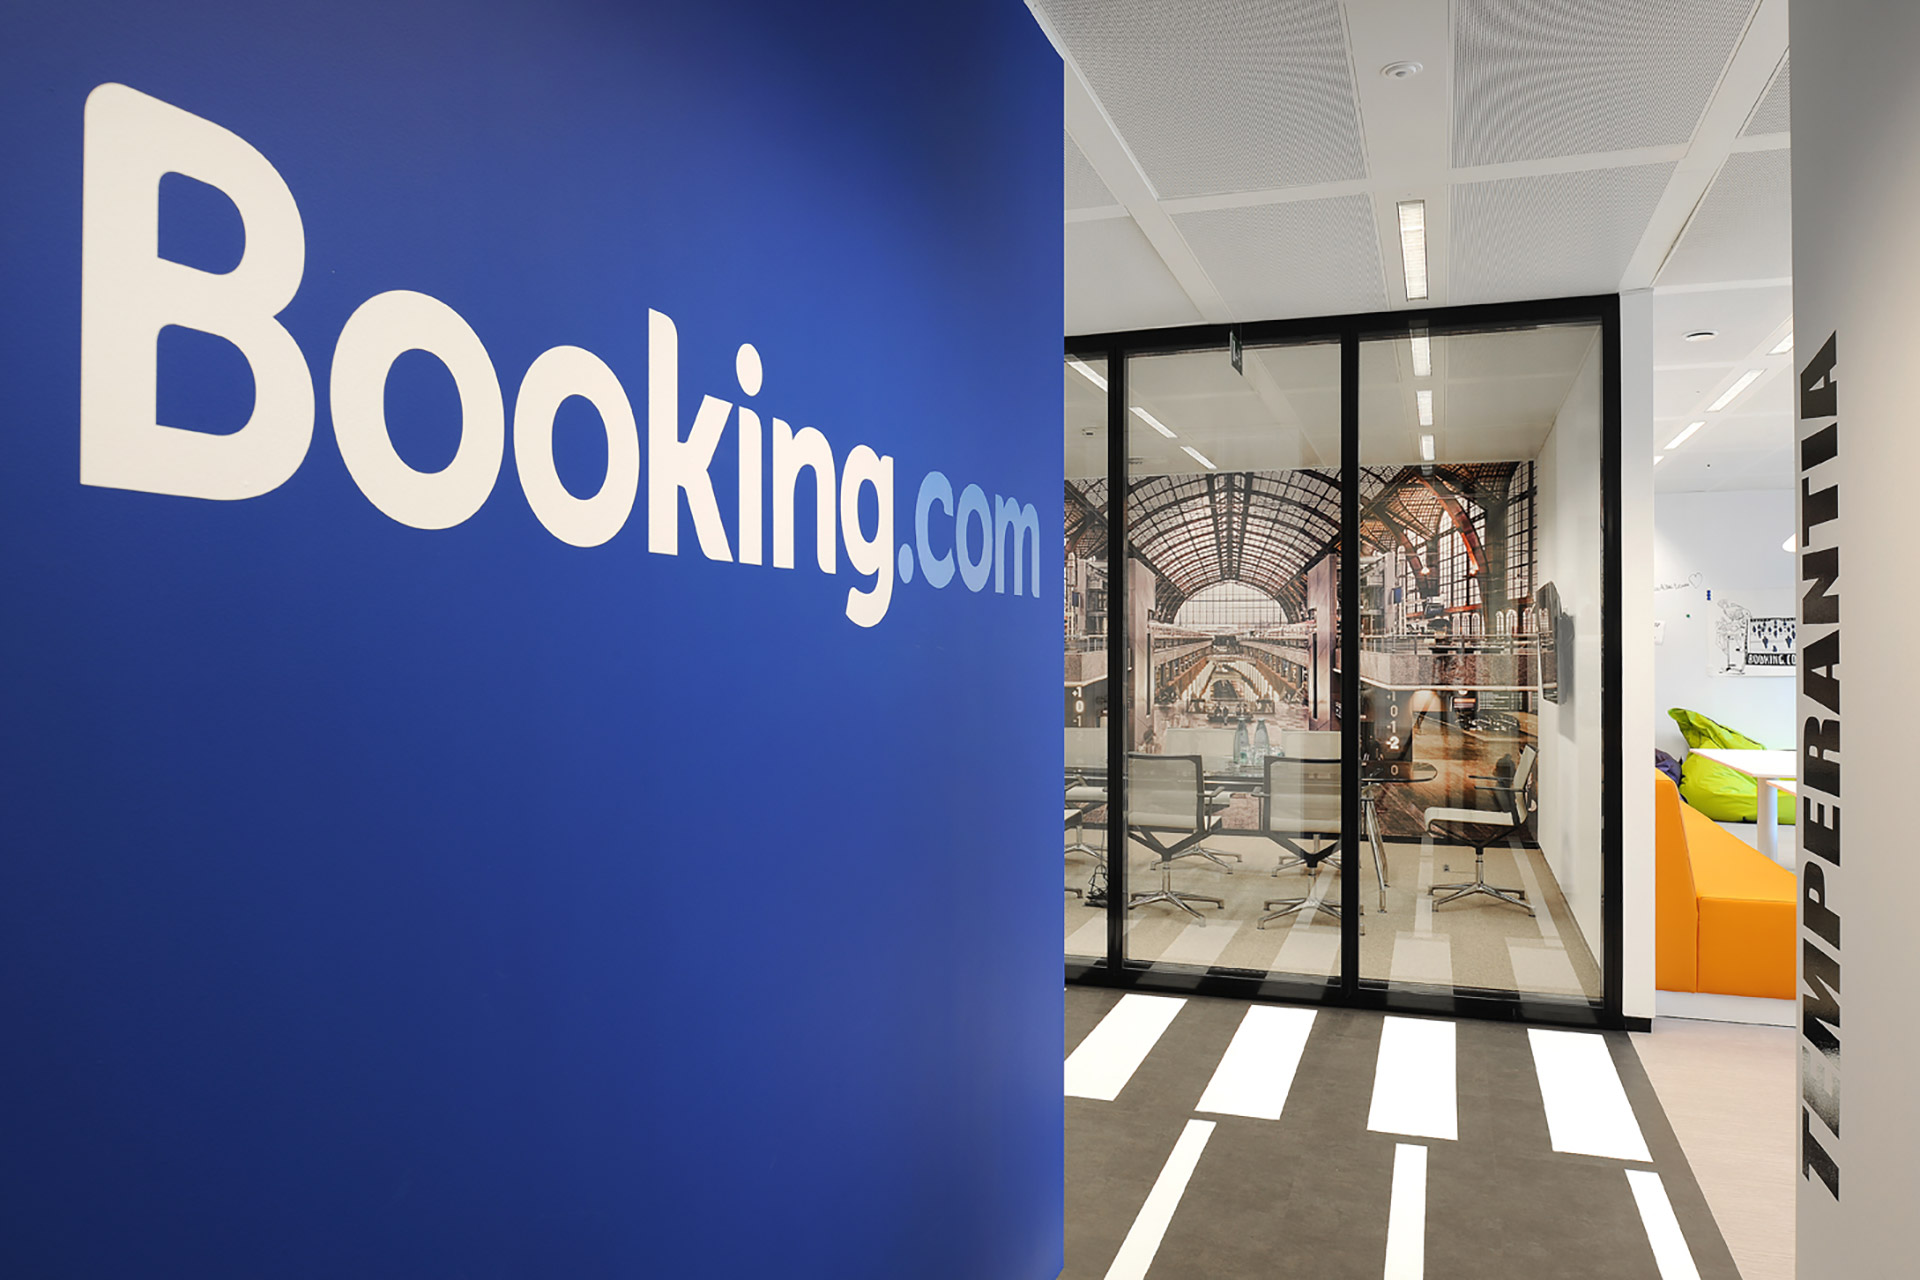 bookingcom-search-page-banner